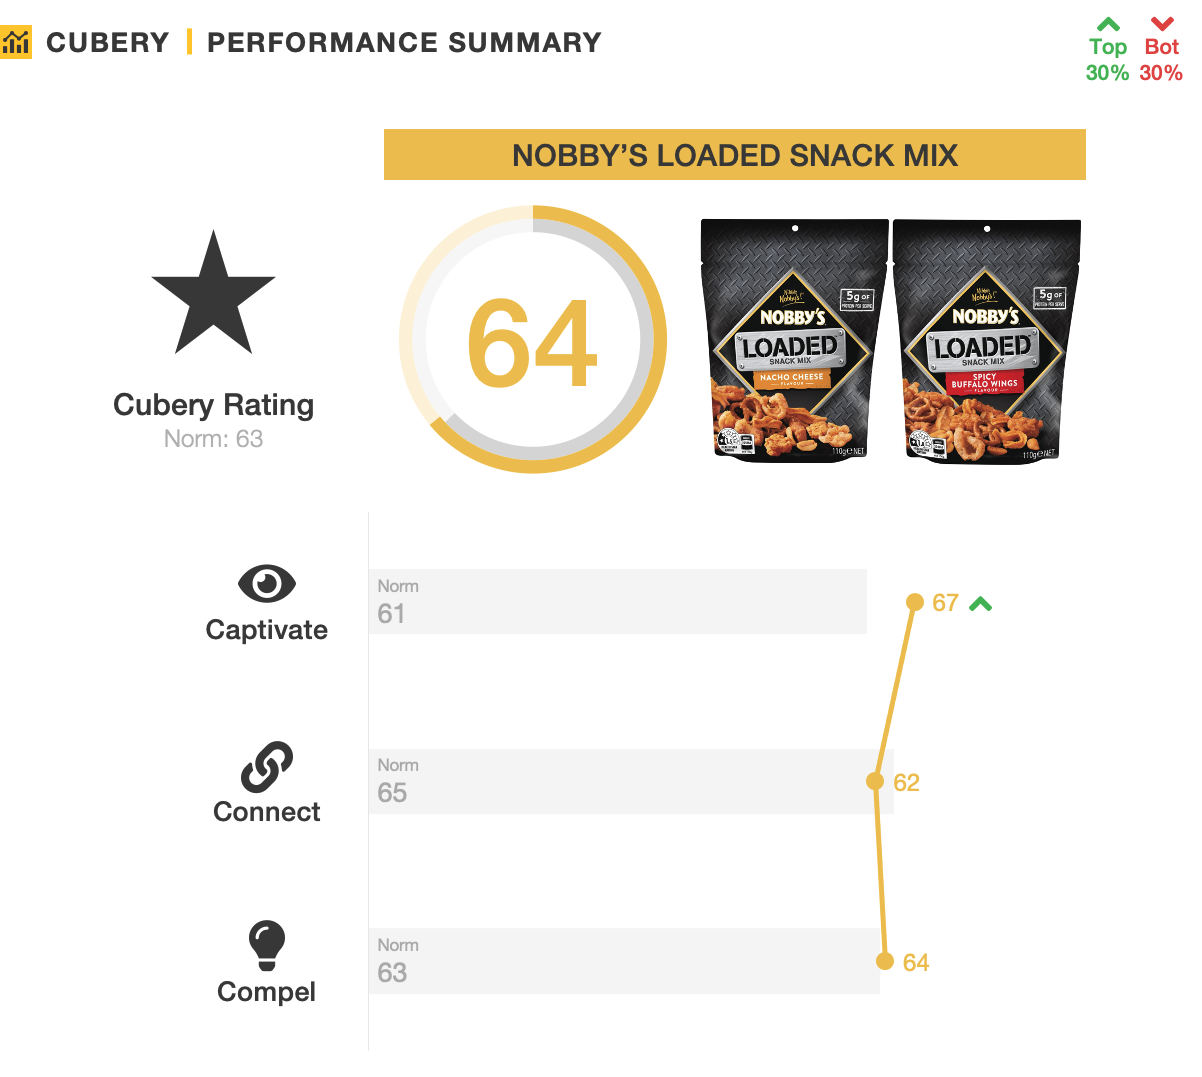 Nobby's Loaded Nut Mix - Pack Testing -  Performance Summary